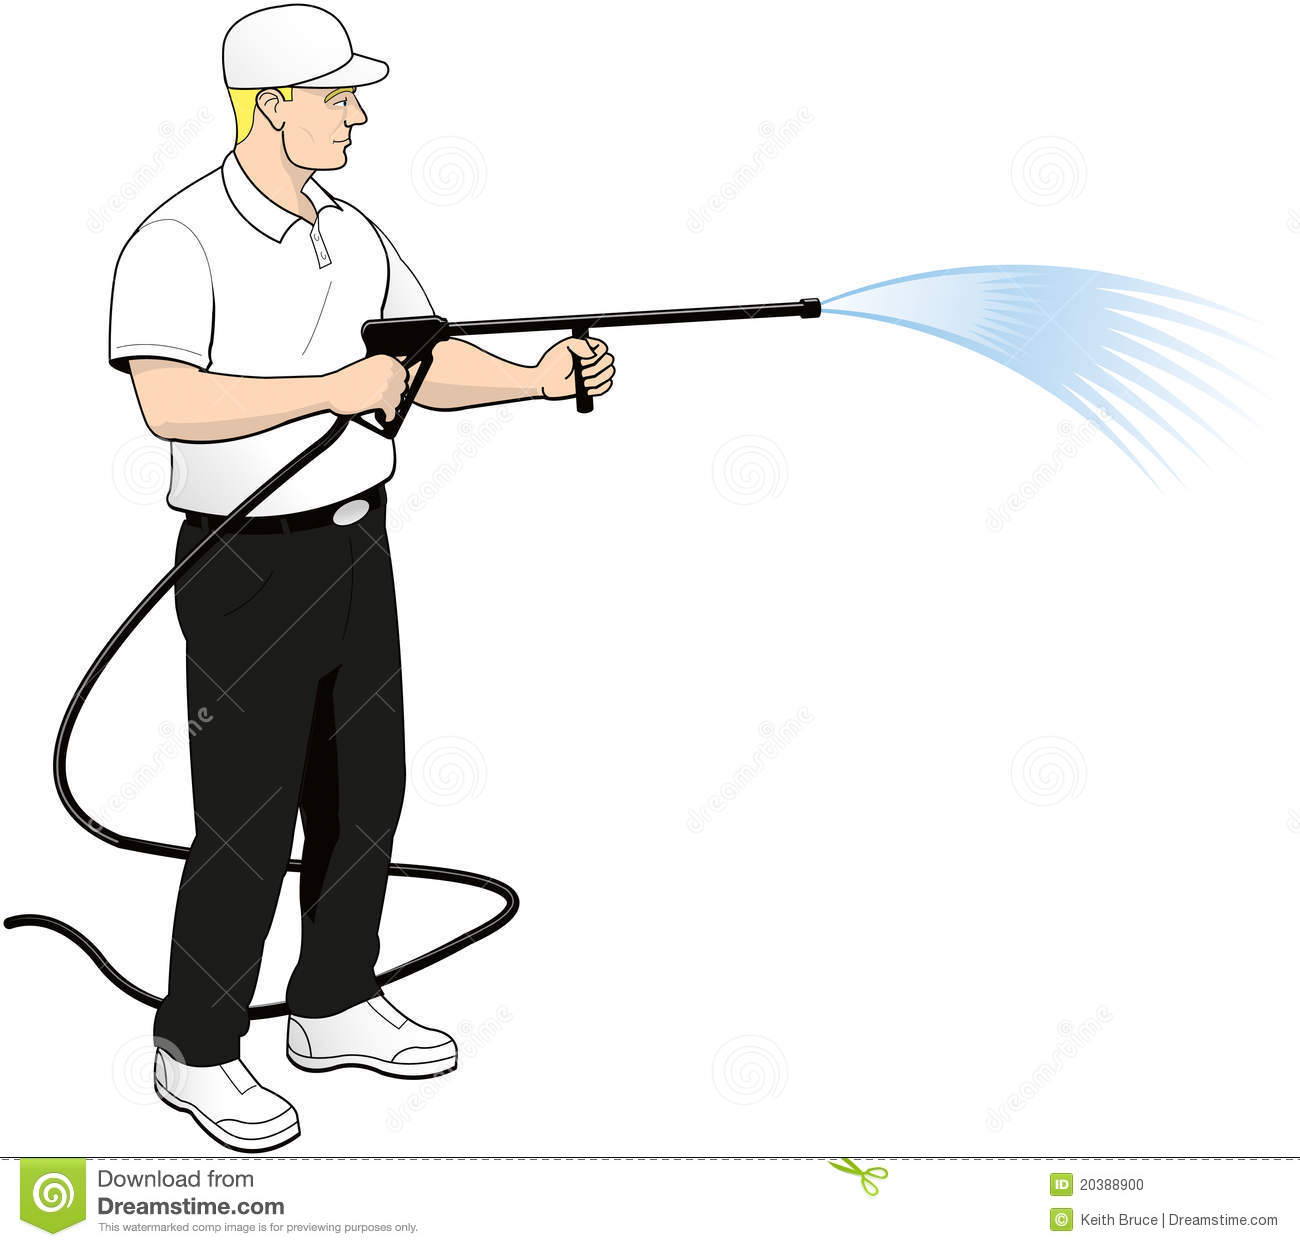 Cleaning My Engine 133559 furthermore Cleaning The Beach People Cliparts moreover Cl  Clipart in addition 5078 moreover prosouthpressurewashing. on man pressure washer